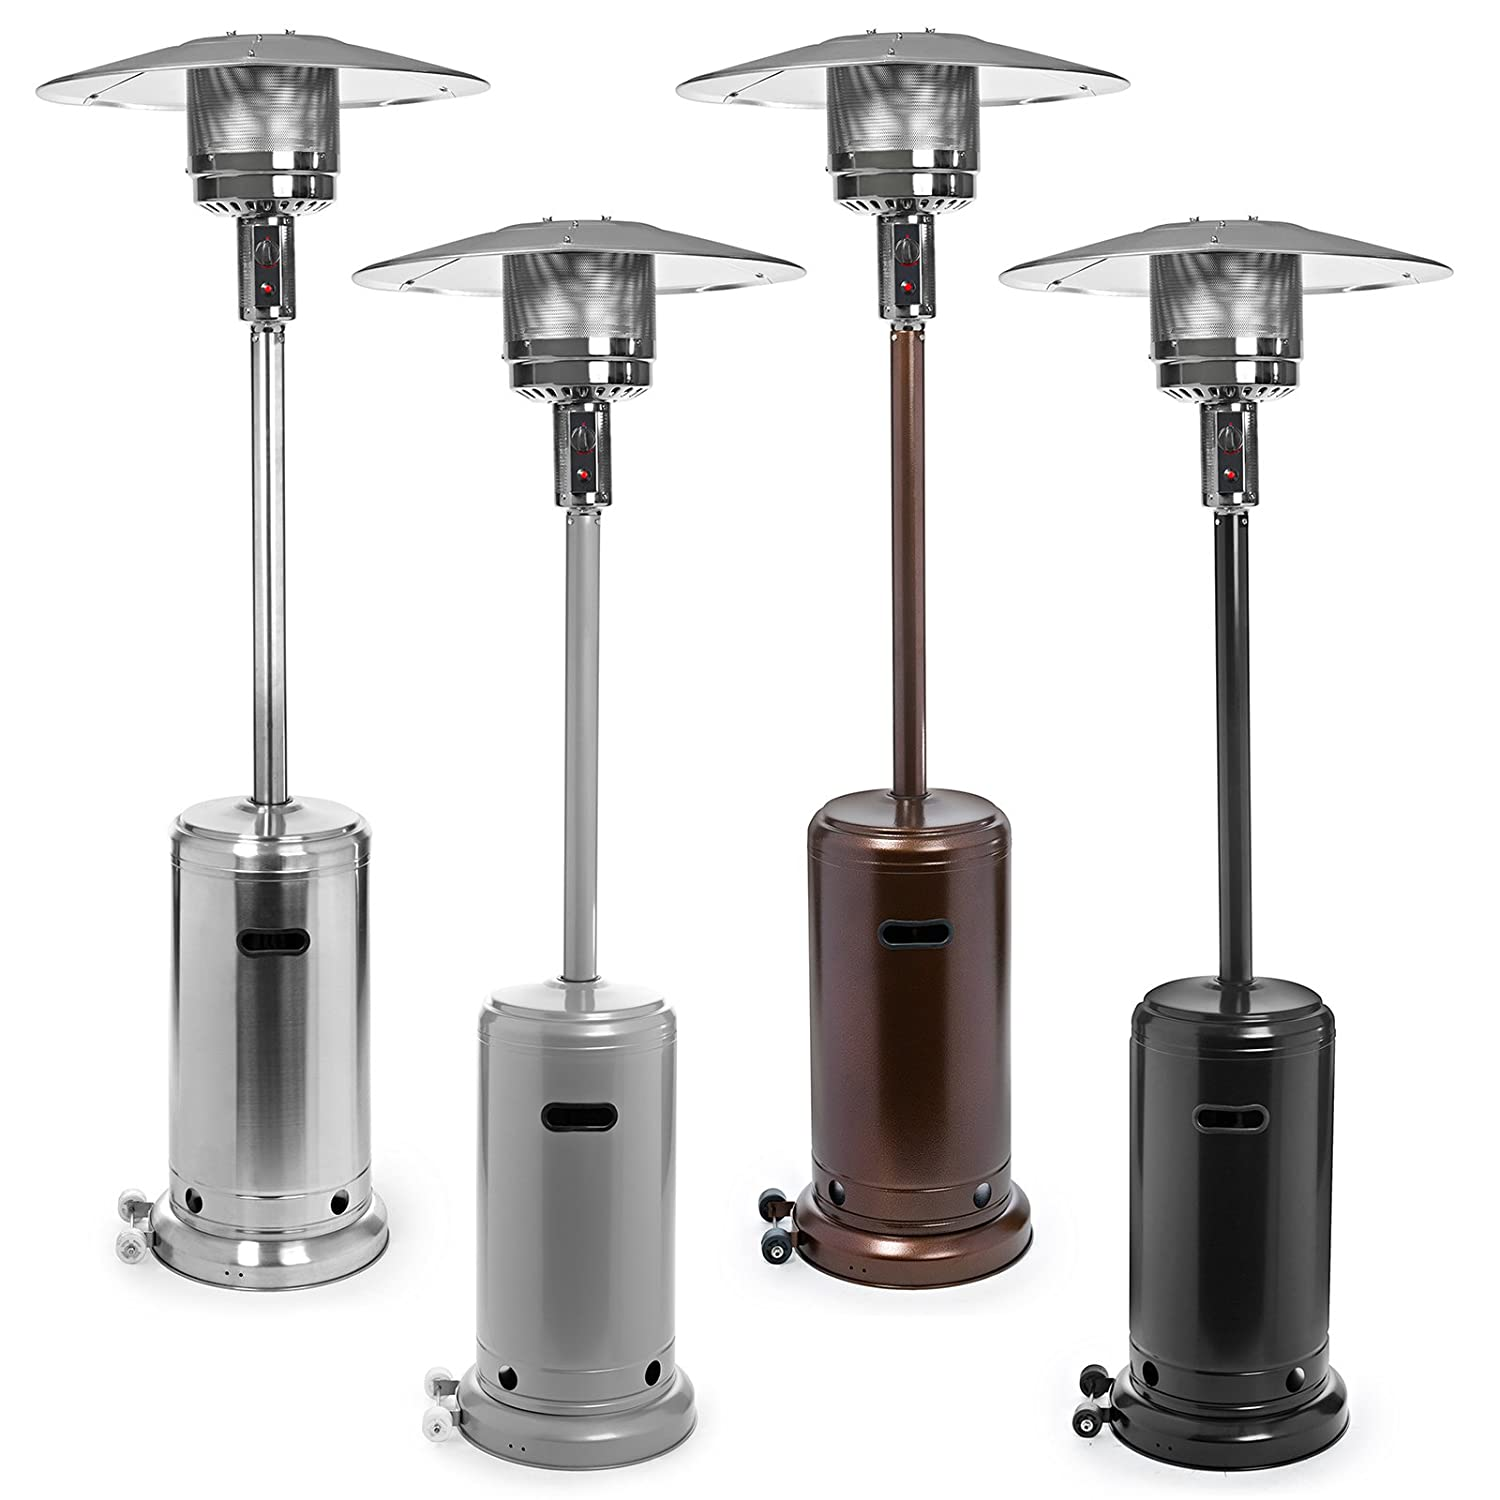 Amazon.com : Thermo Tiki Stainless Steel Floor Standing Propane Patio Heater  With Cover : Portable Outdoor Heating : Garden U0026 Outdoor